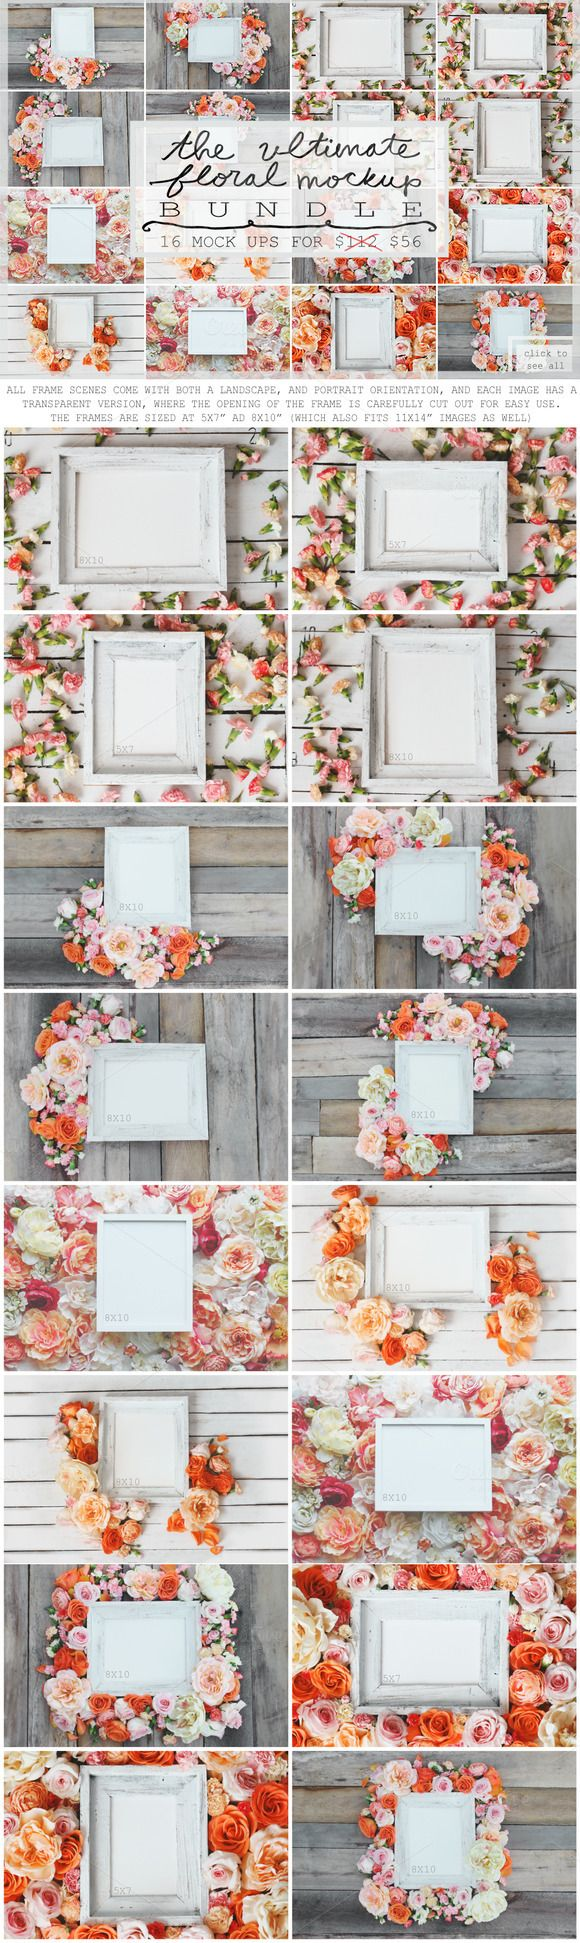 THE ULTIMATE FLORAL MOCK UP BUNDLE by WeLivedHappilyEverAfter on Creative Market